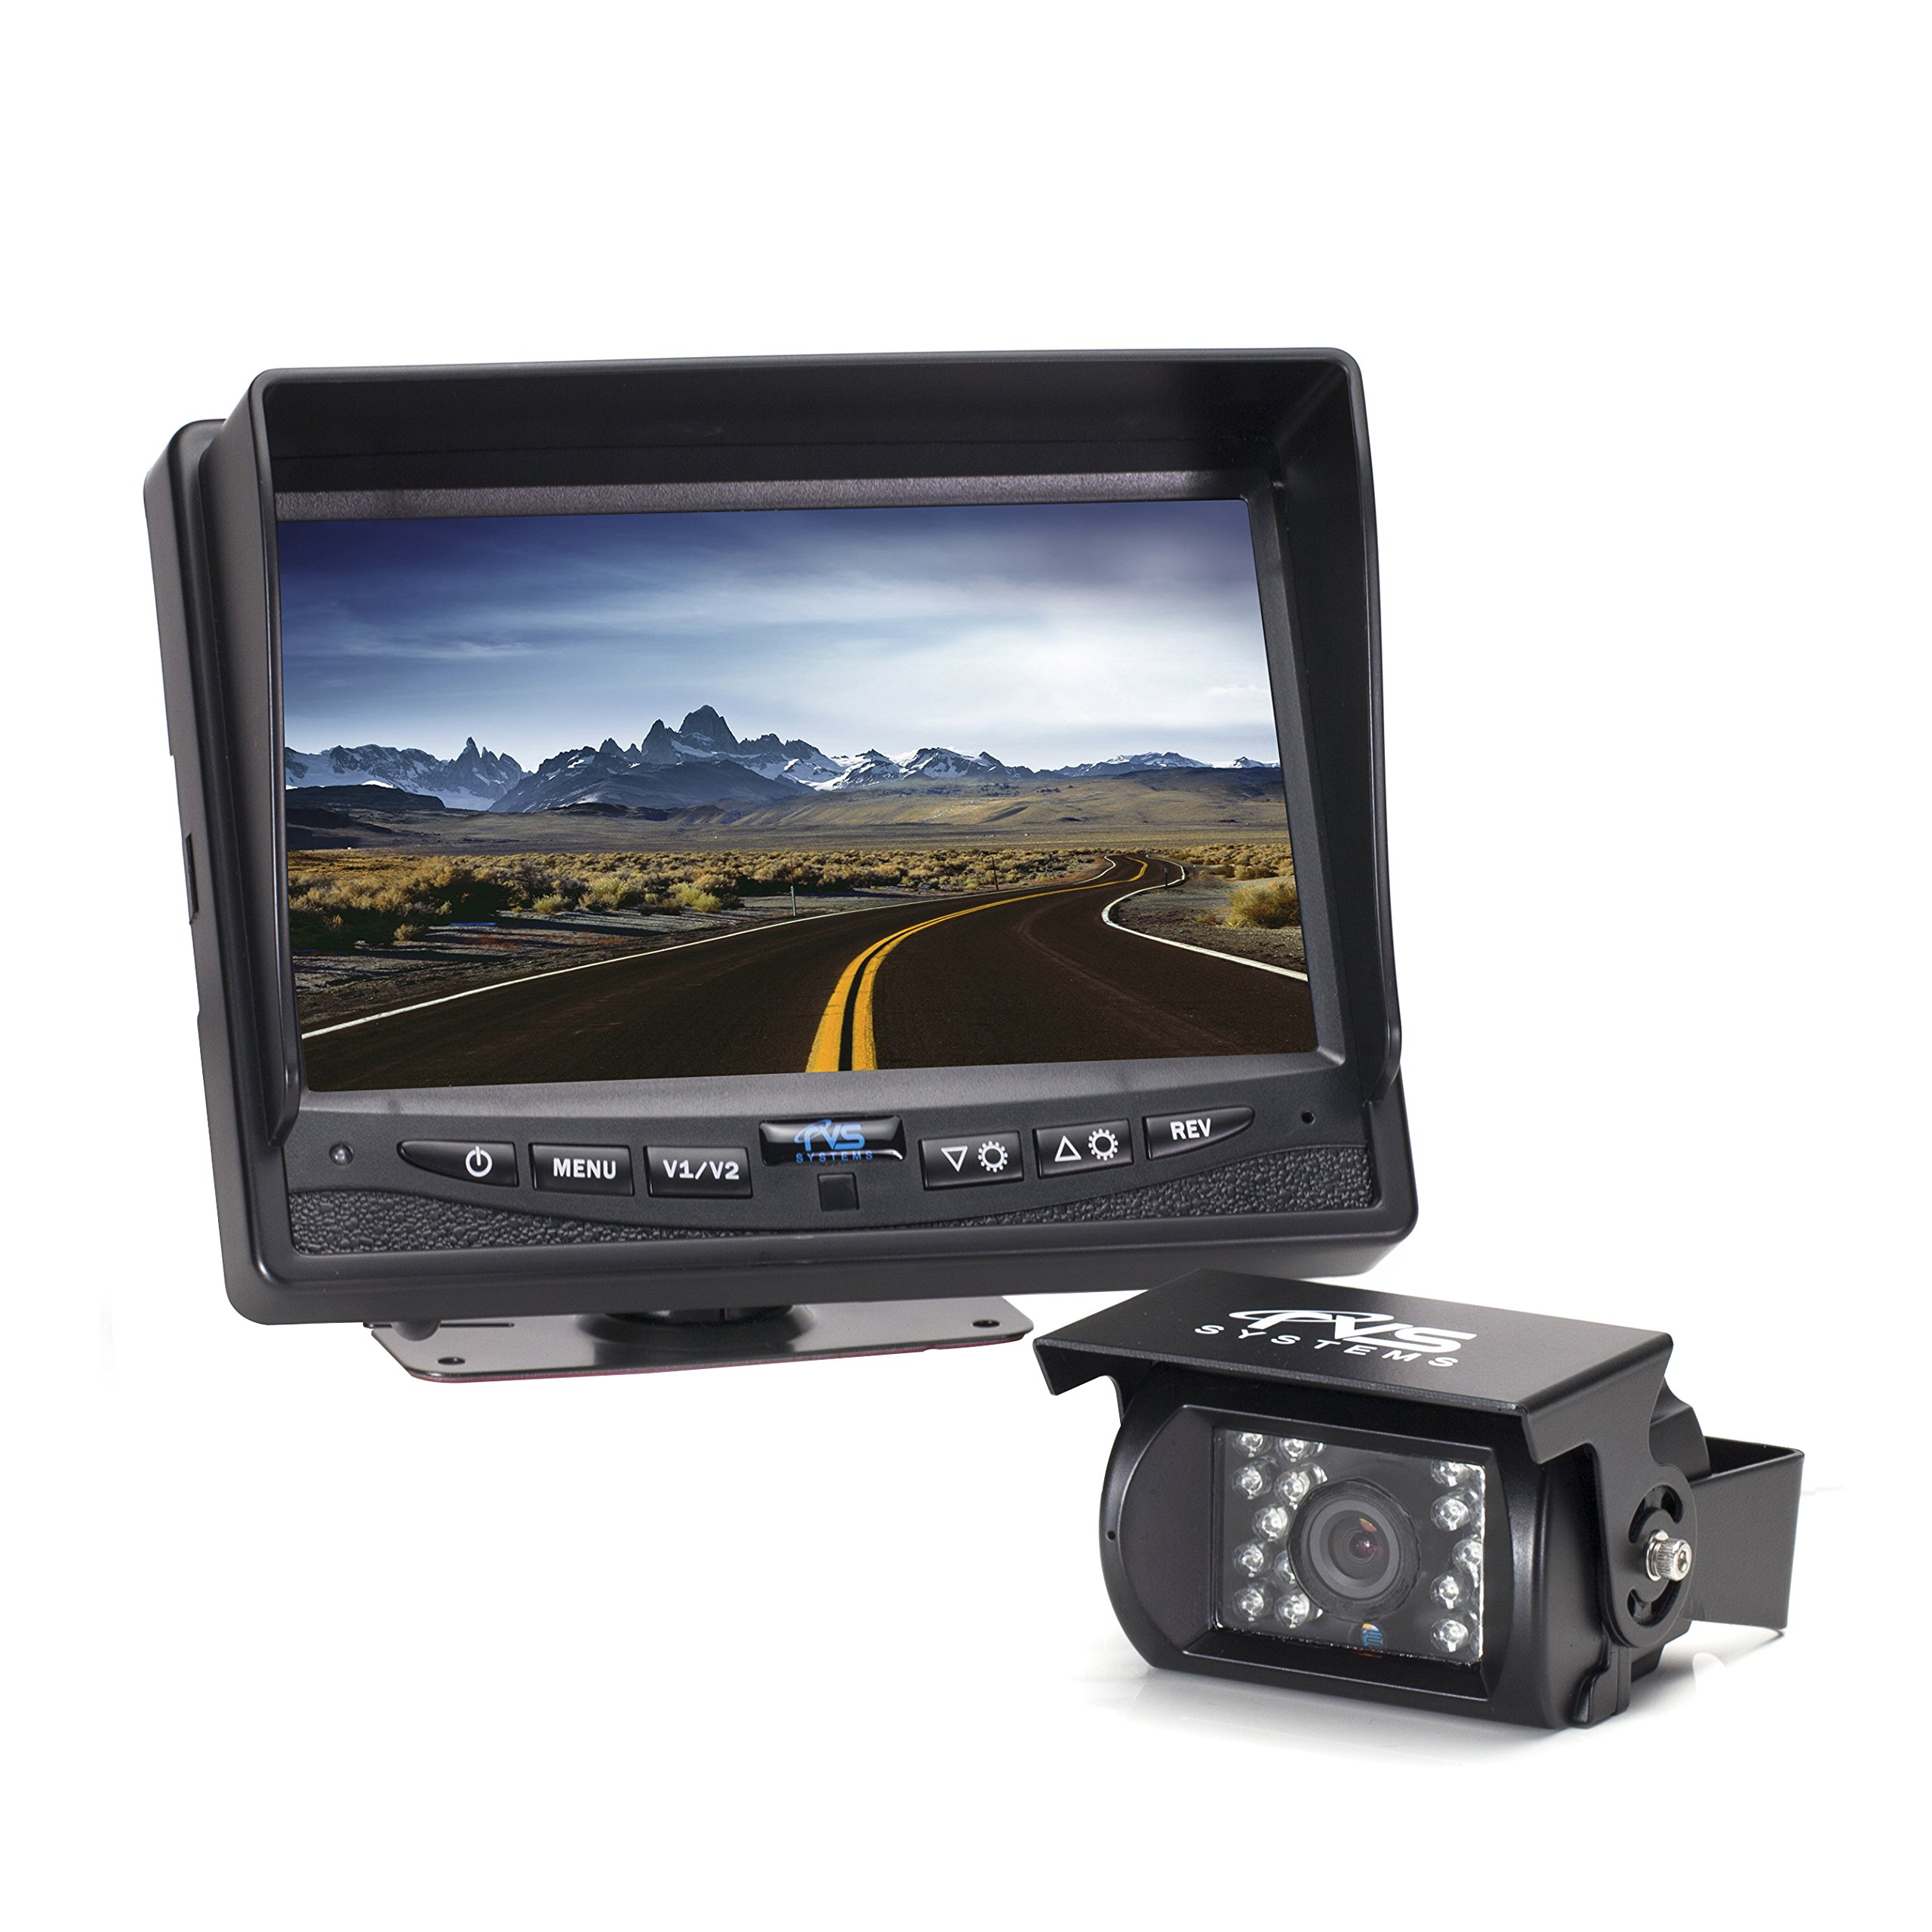 Rear View Safety Backup Camera System with 7'' Display (Black) RVS-770613